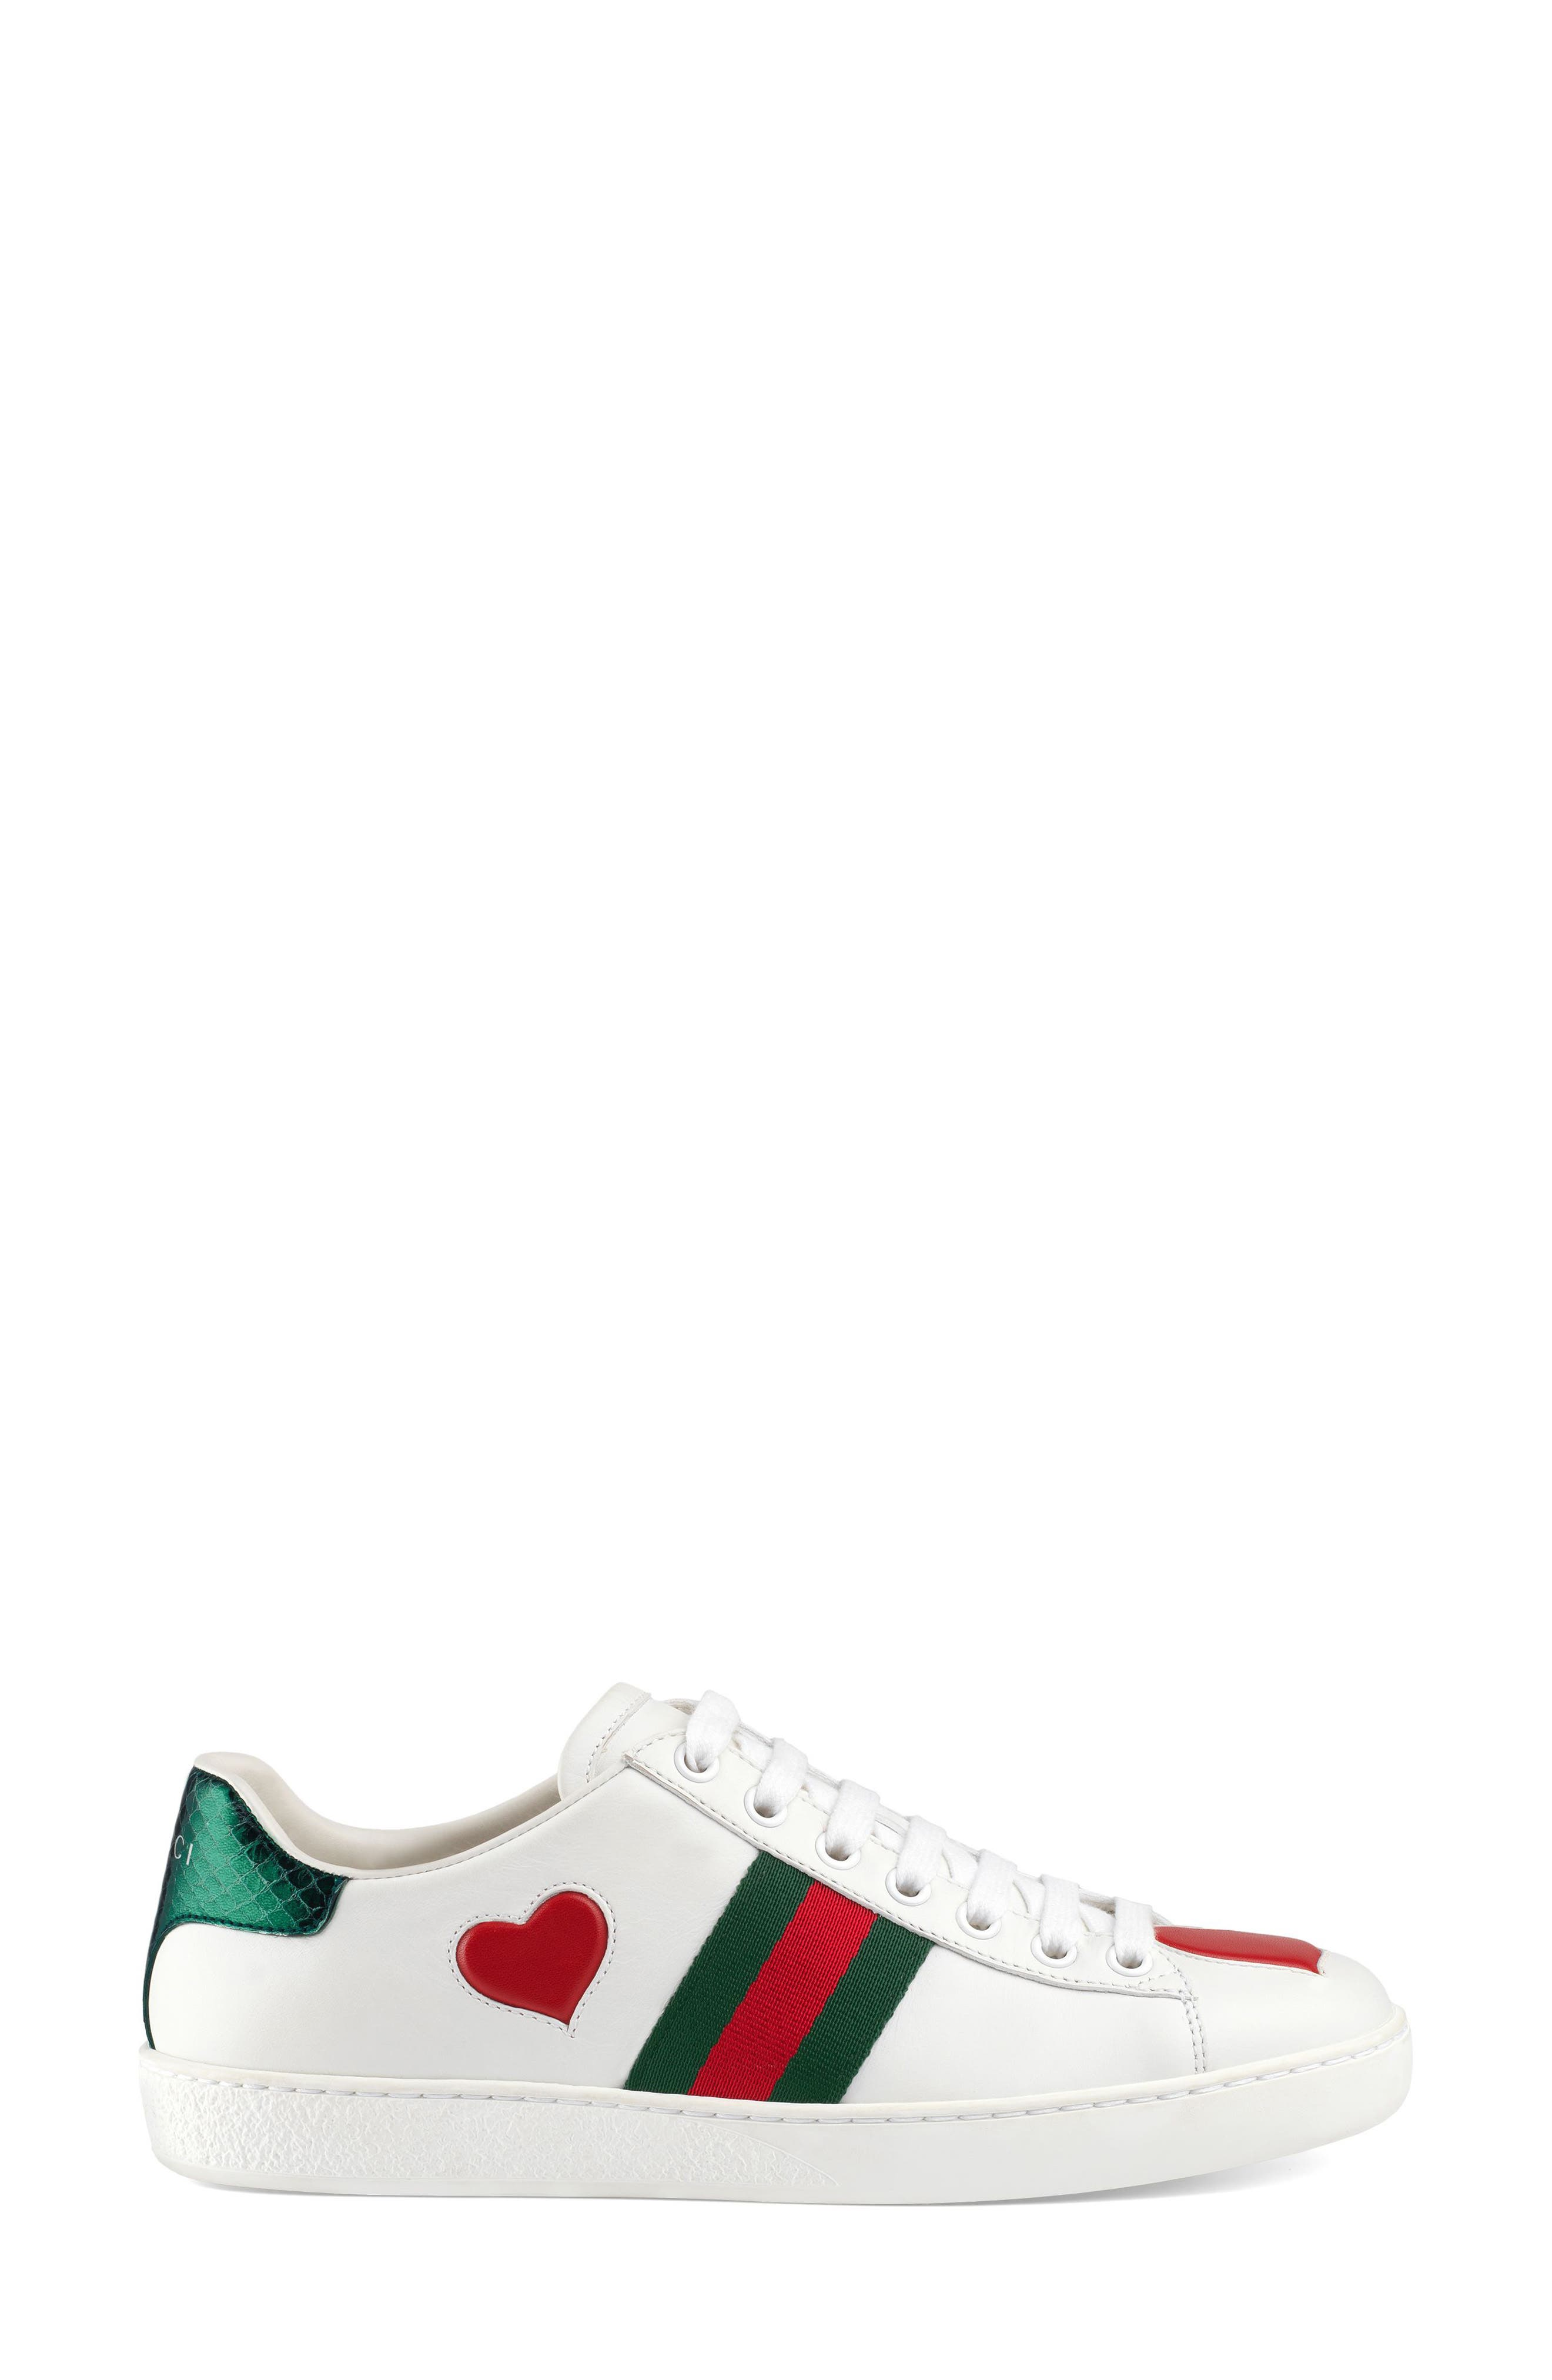 GUCCI, New Ace Heart Sneaker, Alternate thumbnail 2, color, WHITE